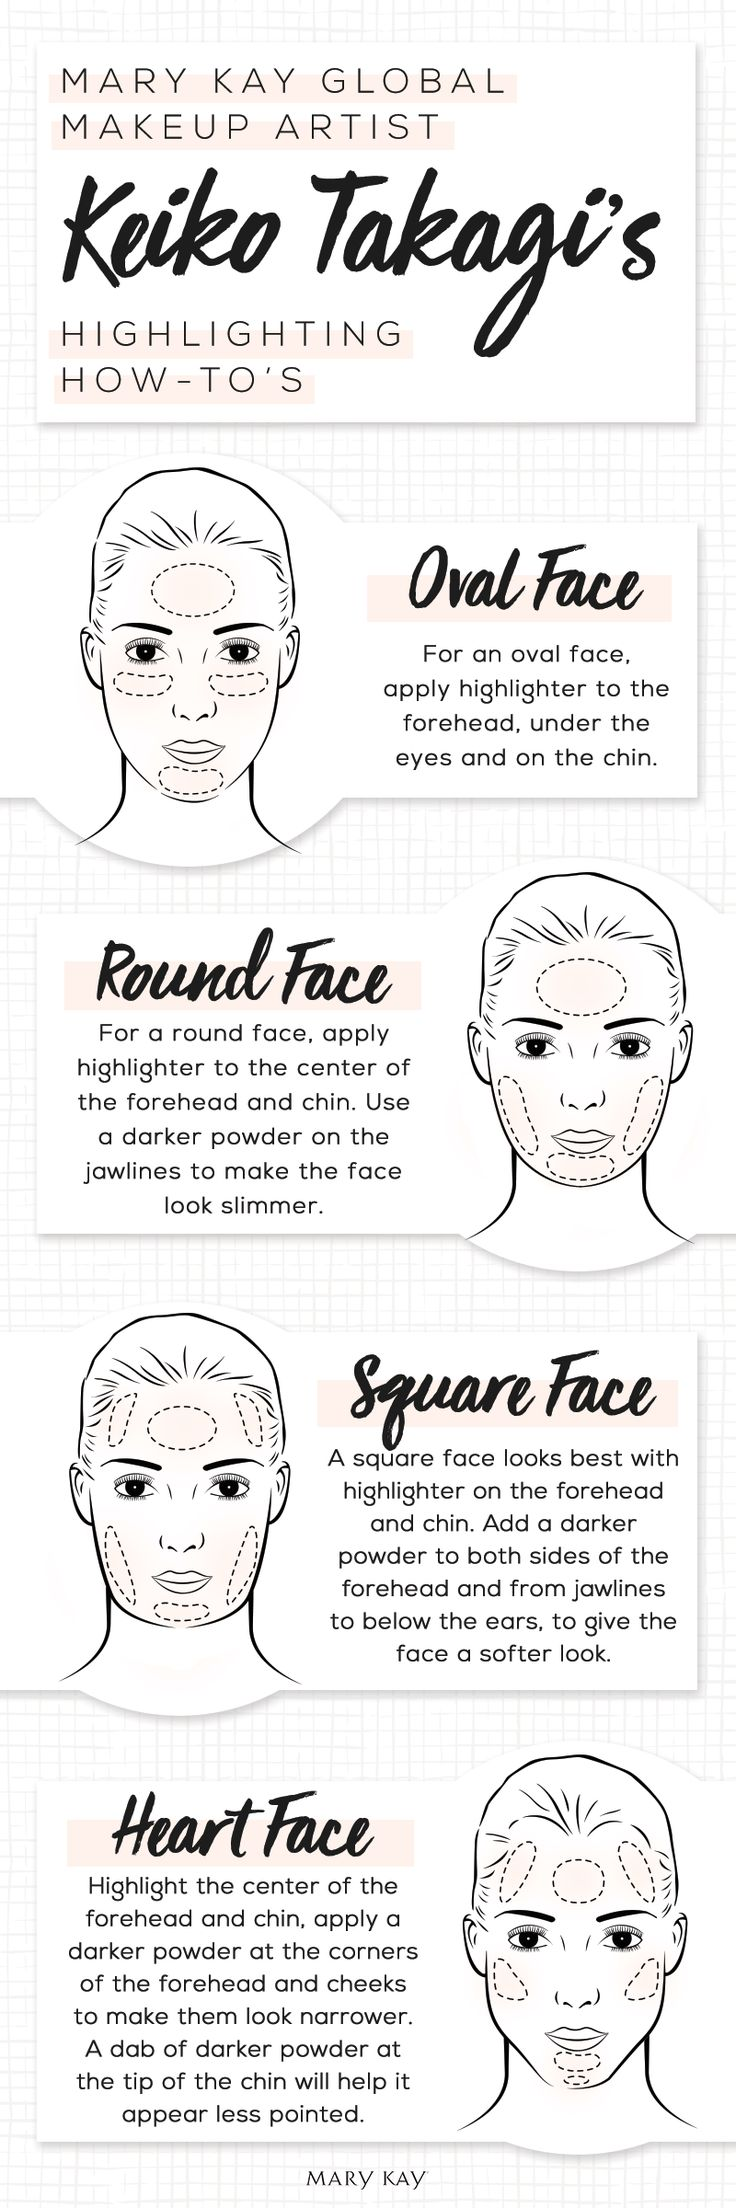 Put your best heart, square, round or oval face forward by highlighting your natural features! | Mary Kay